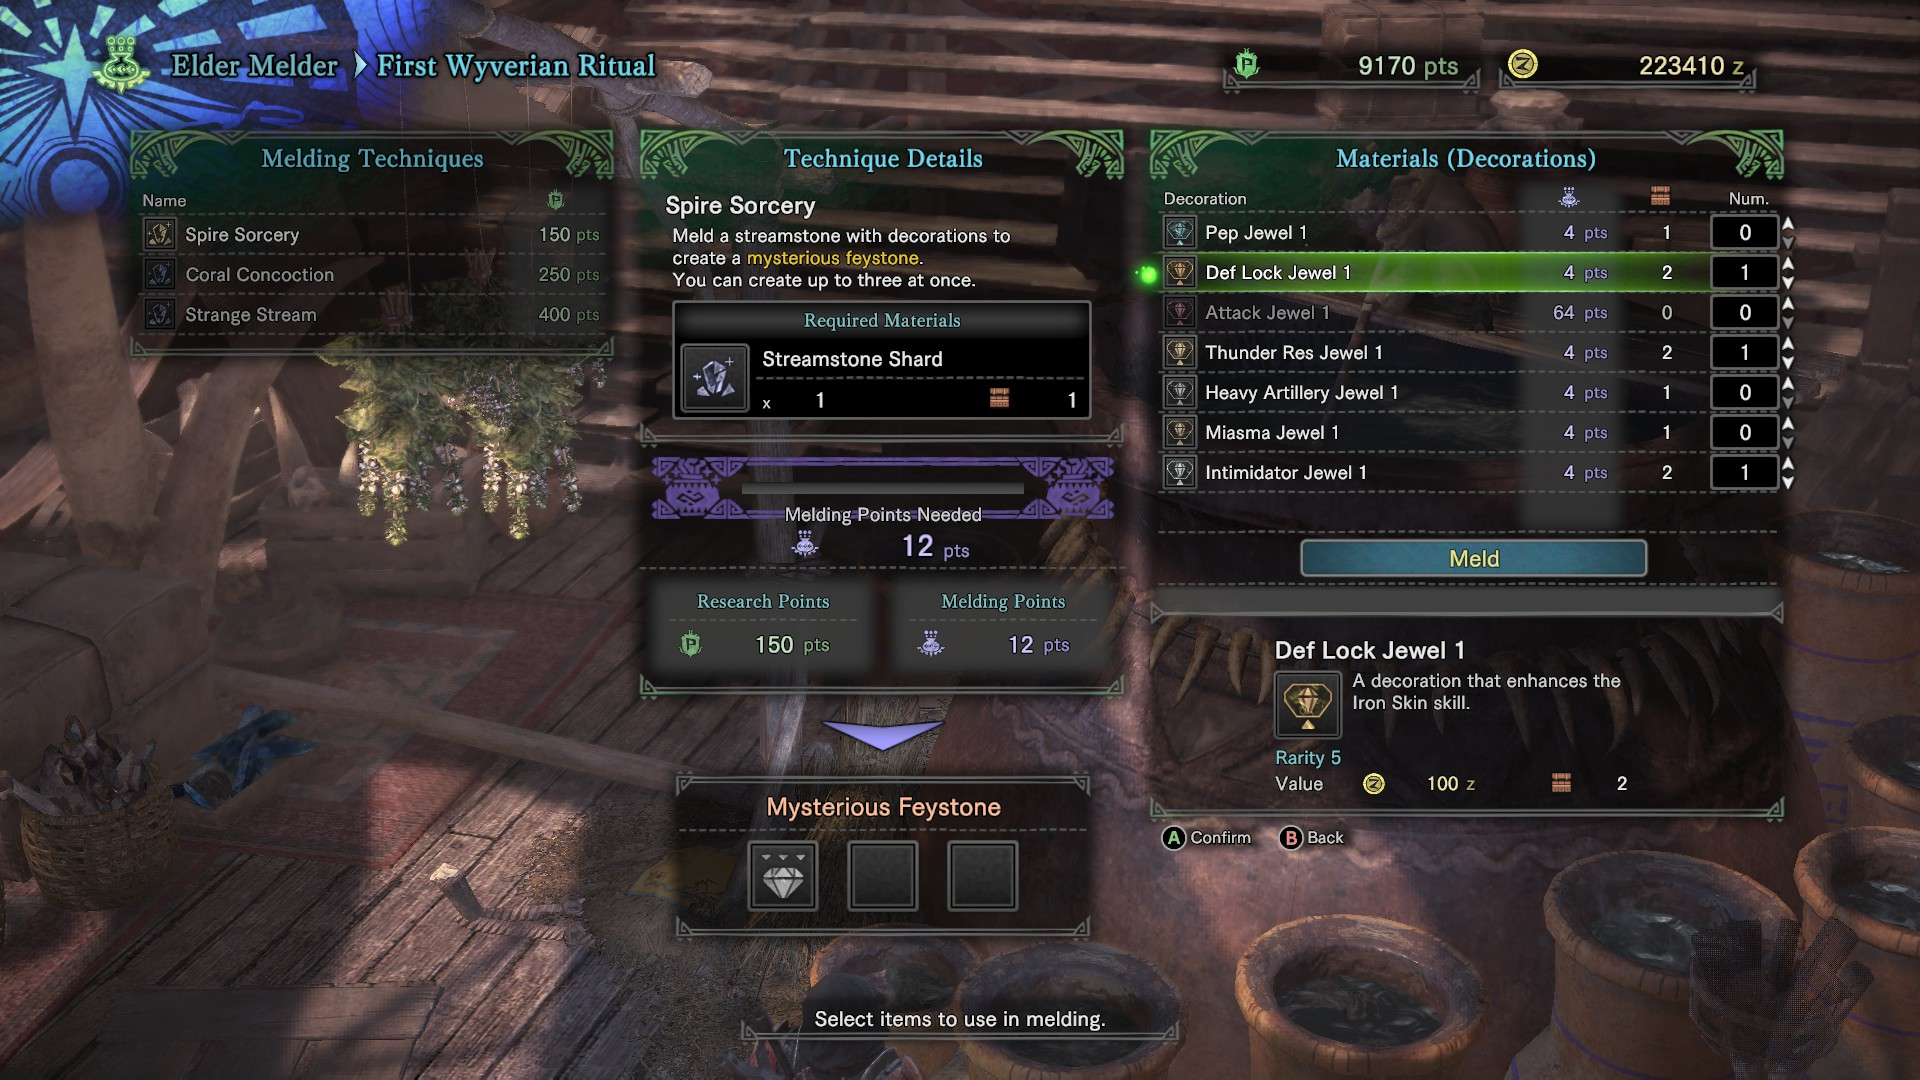 Hunter is in the first wyvern ritual menu.